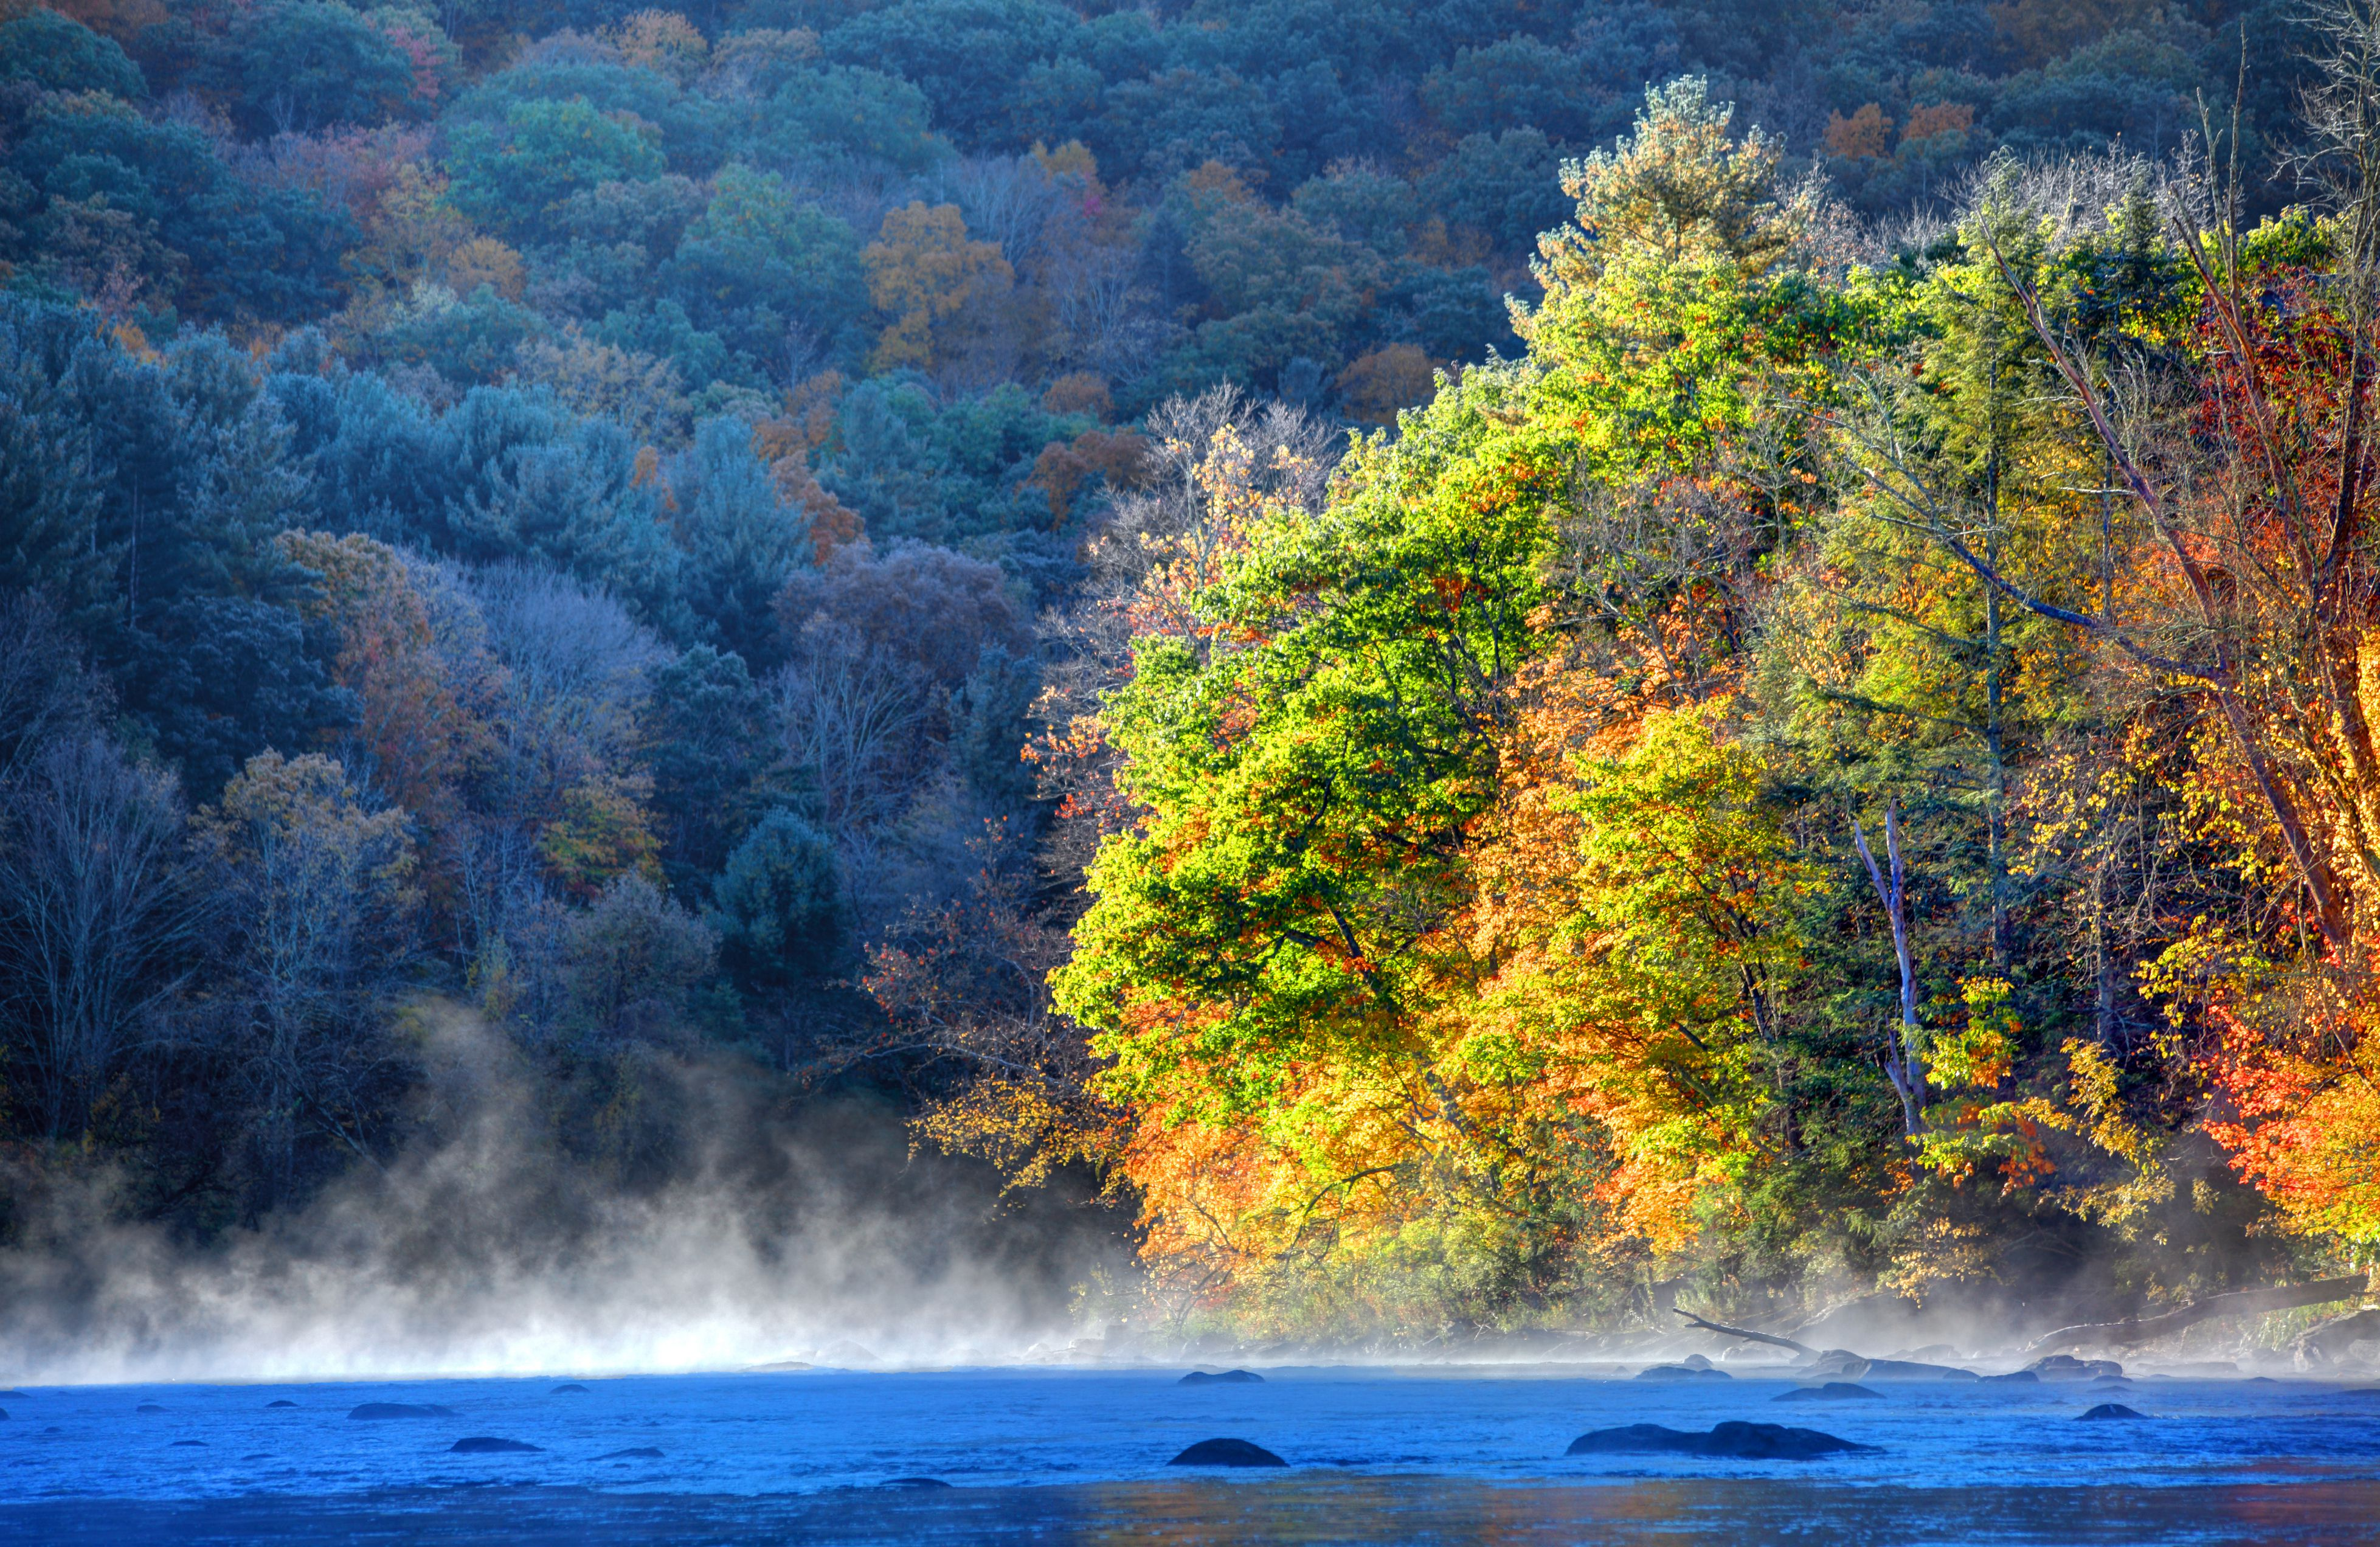 Autumn on the Housatonic River in the Litchfield Hills of Connecticut